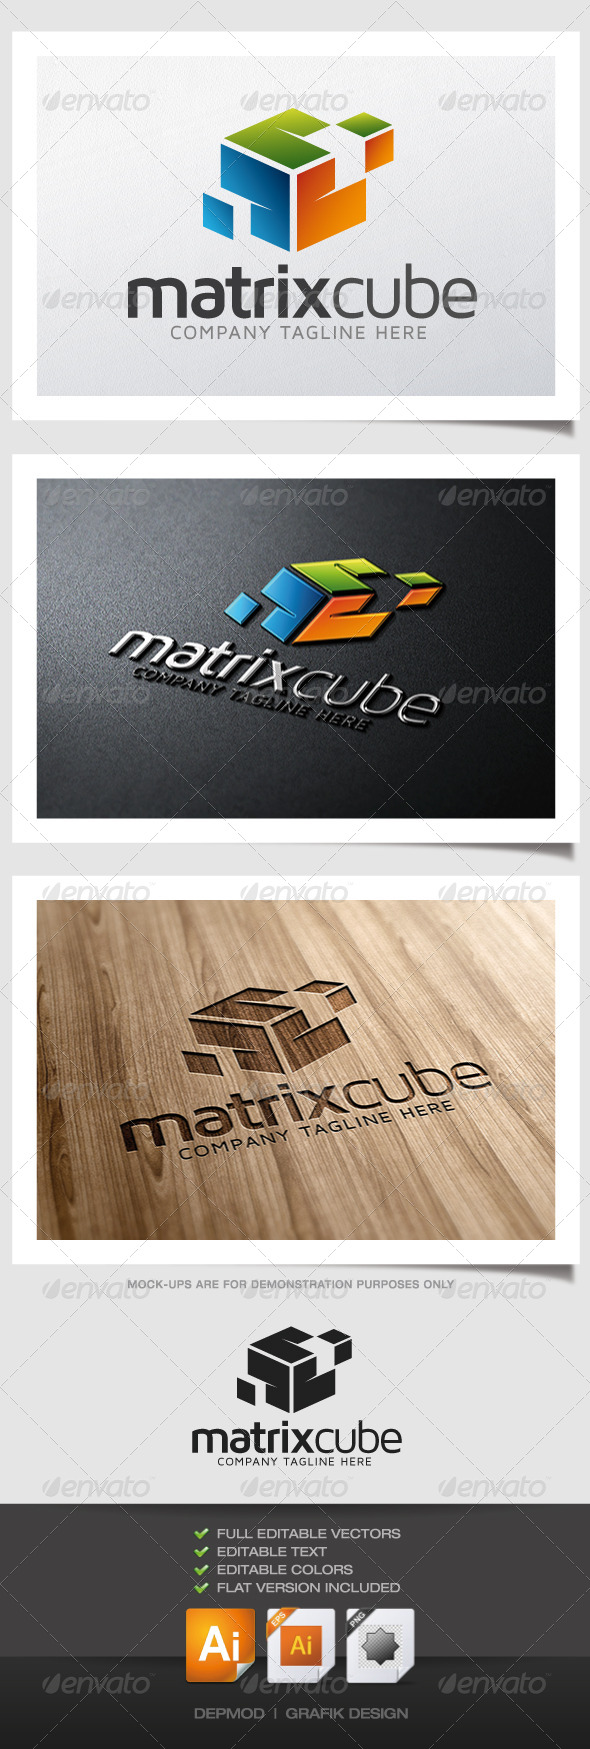 GraphicRiver Matrix Cube Logo 5002388